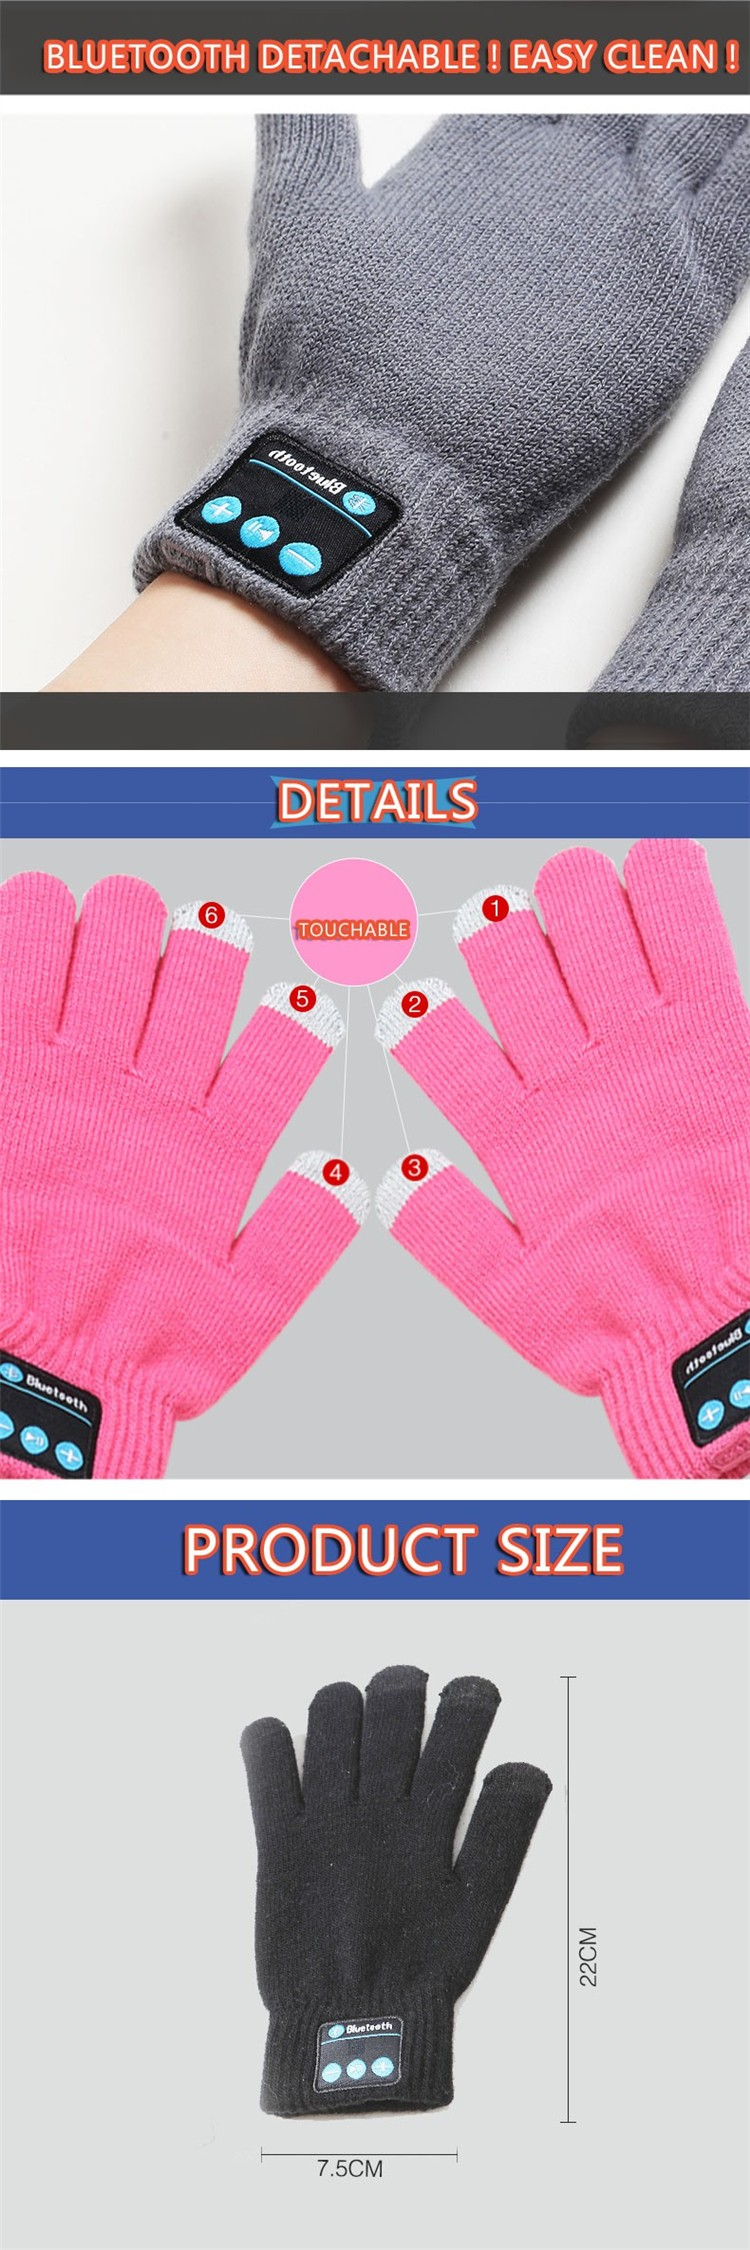 Mobile Phone Earphones Bluetooth Gloves